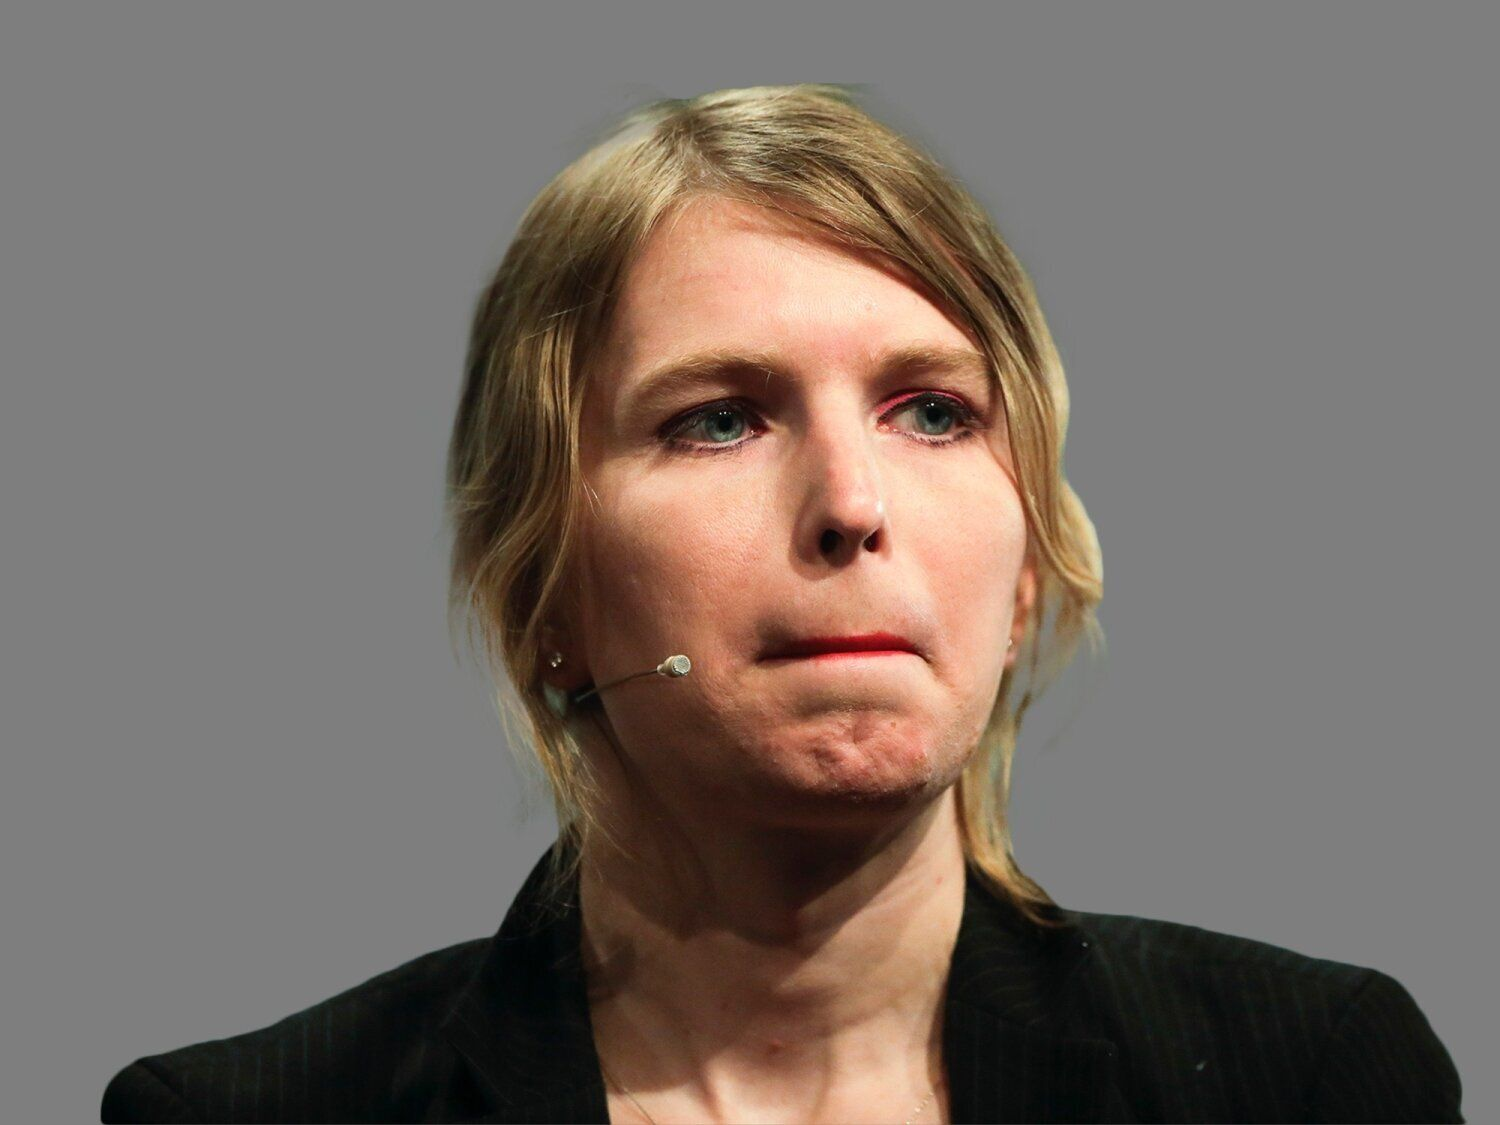 Chelsea Manning headshot, former US Army intelligence analyst who spent time in prison for sharing classified documents, graphic element on gray